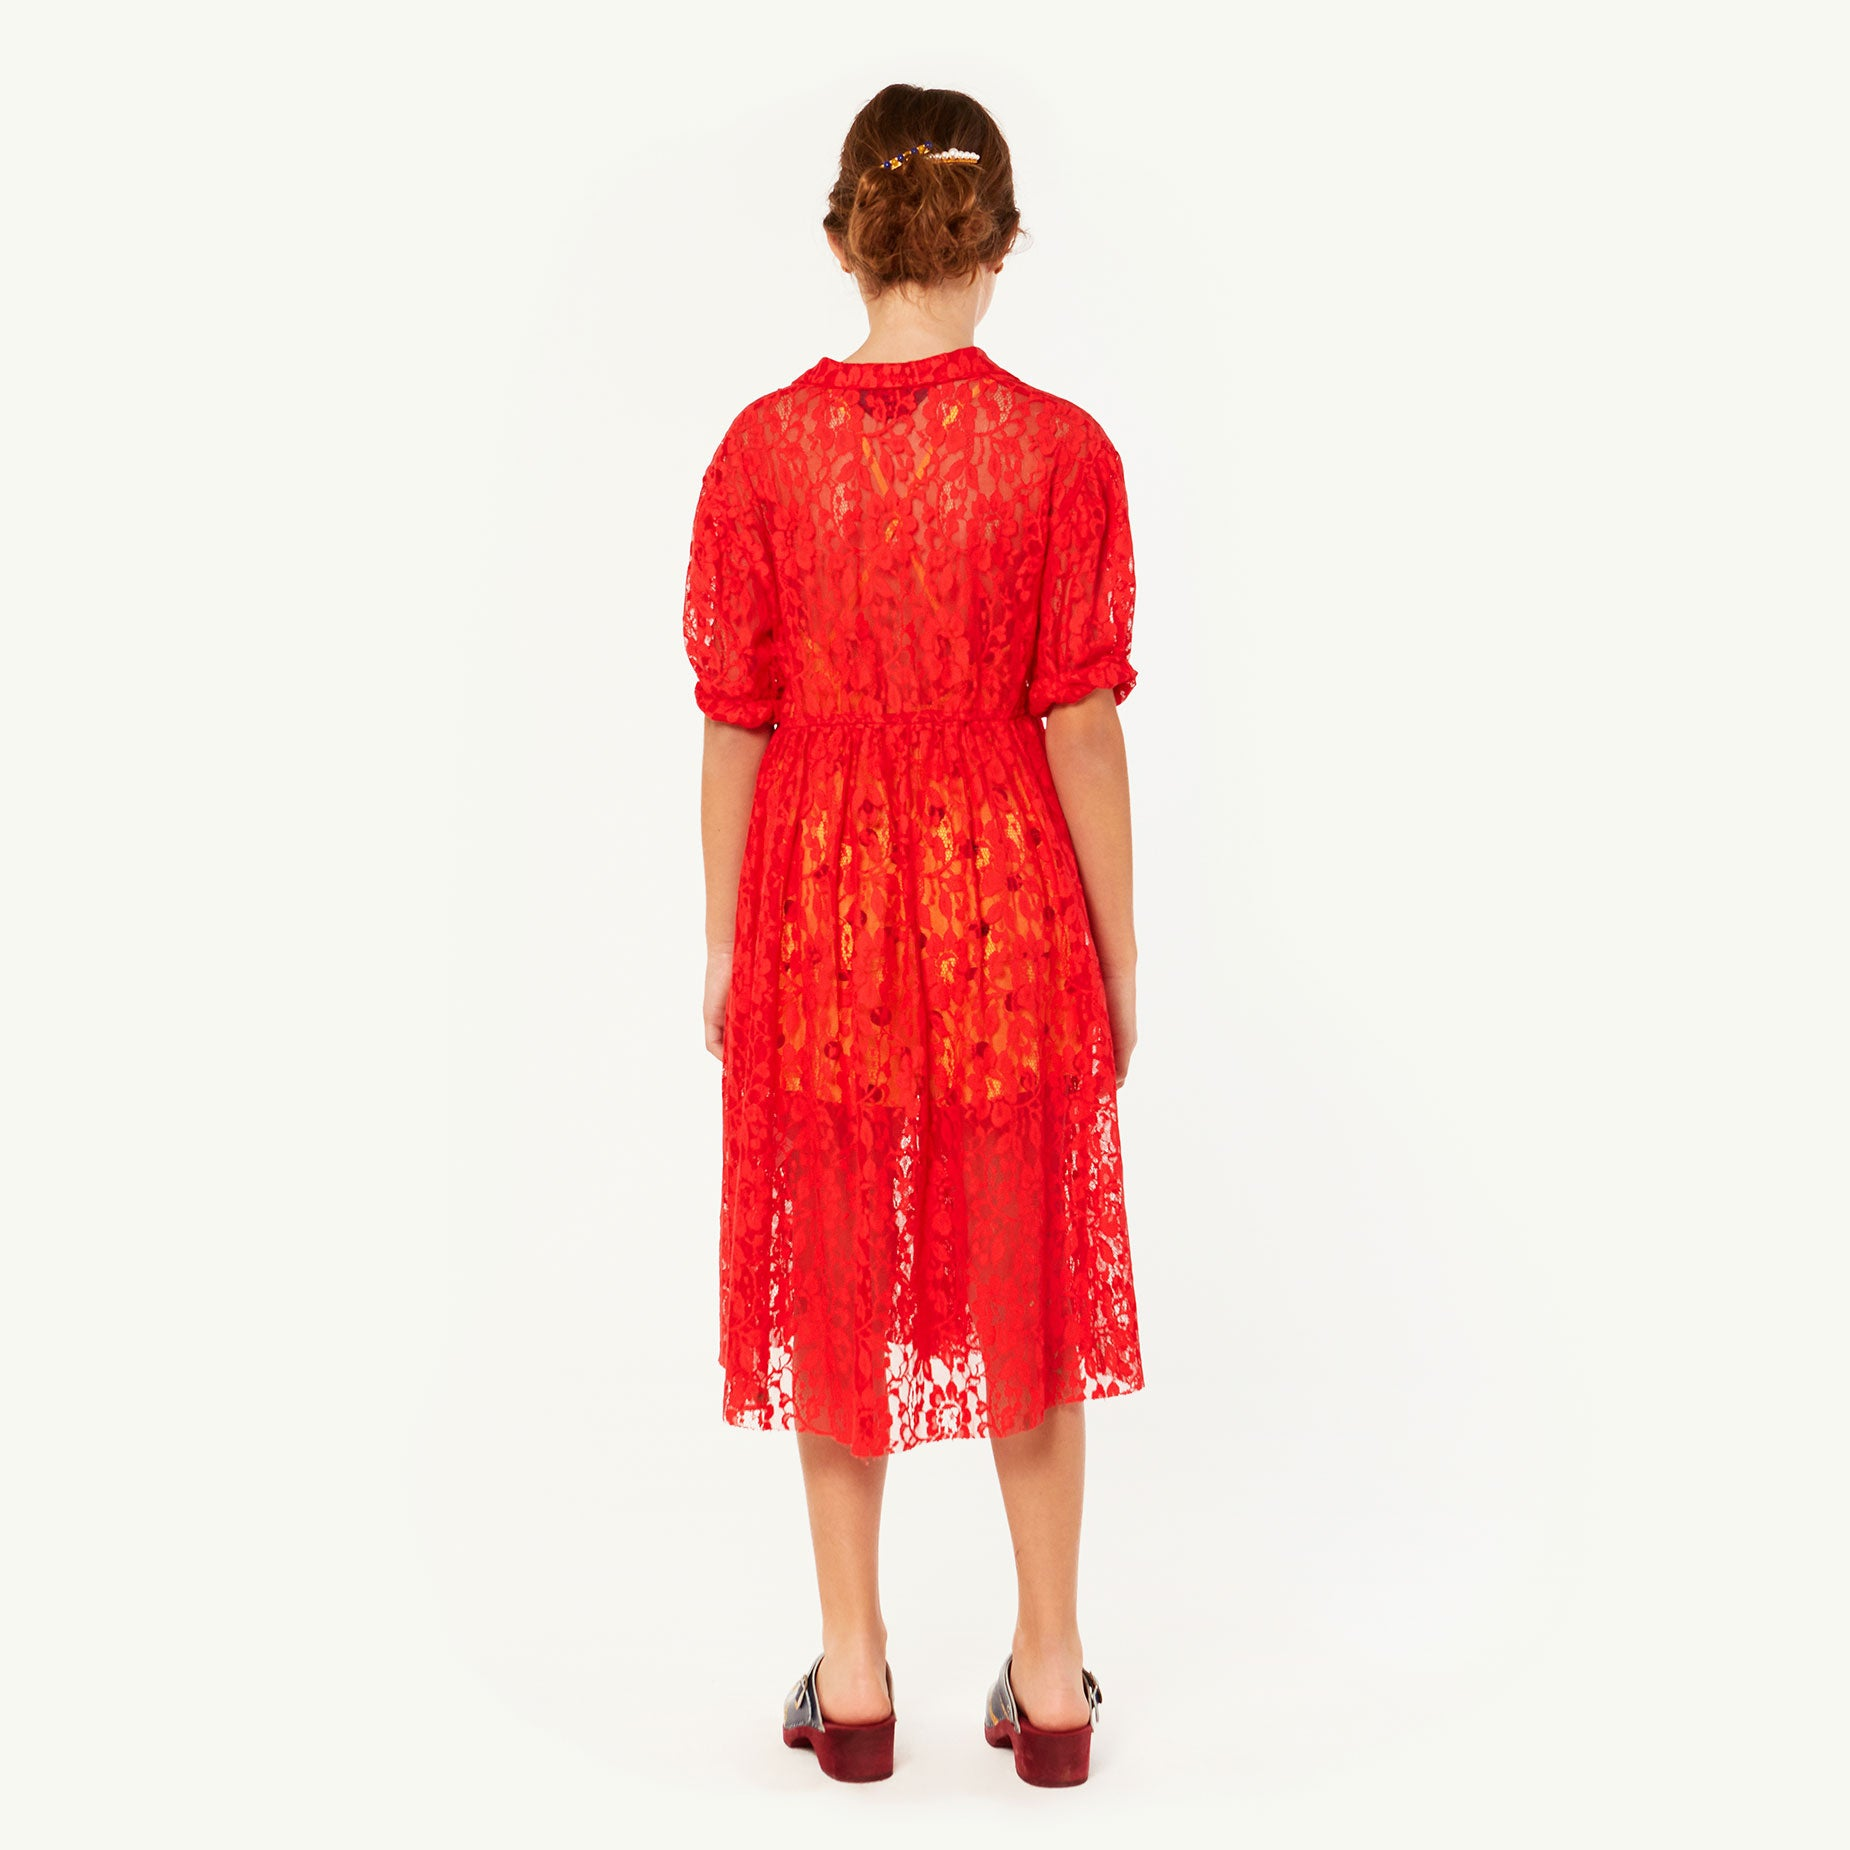 The Animals Observatory Dolphin Kid's Dress Red Lace | BIEN BIEN | www.bienbienshop.com